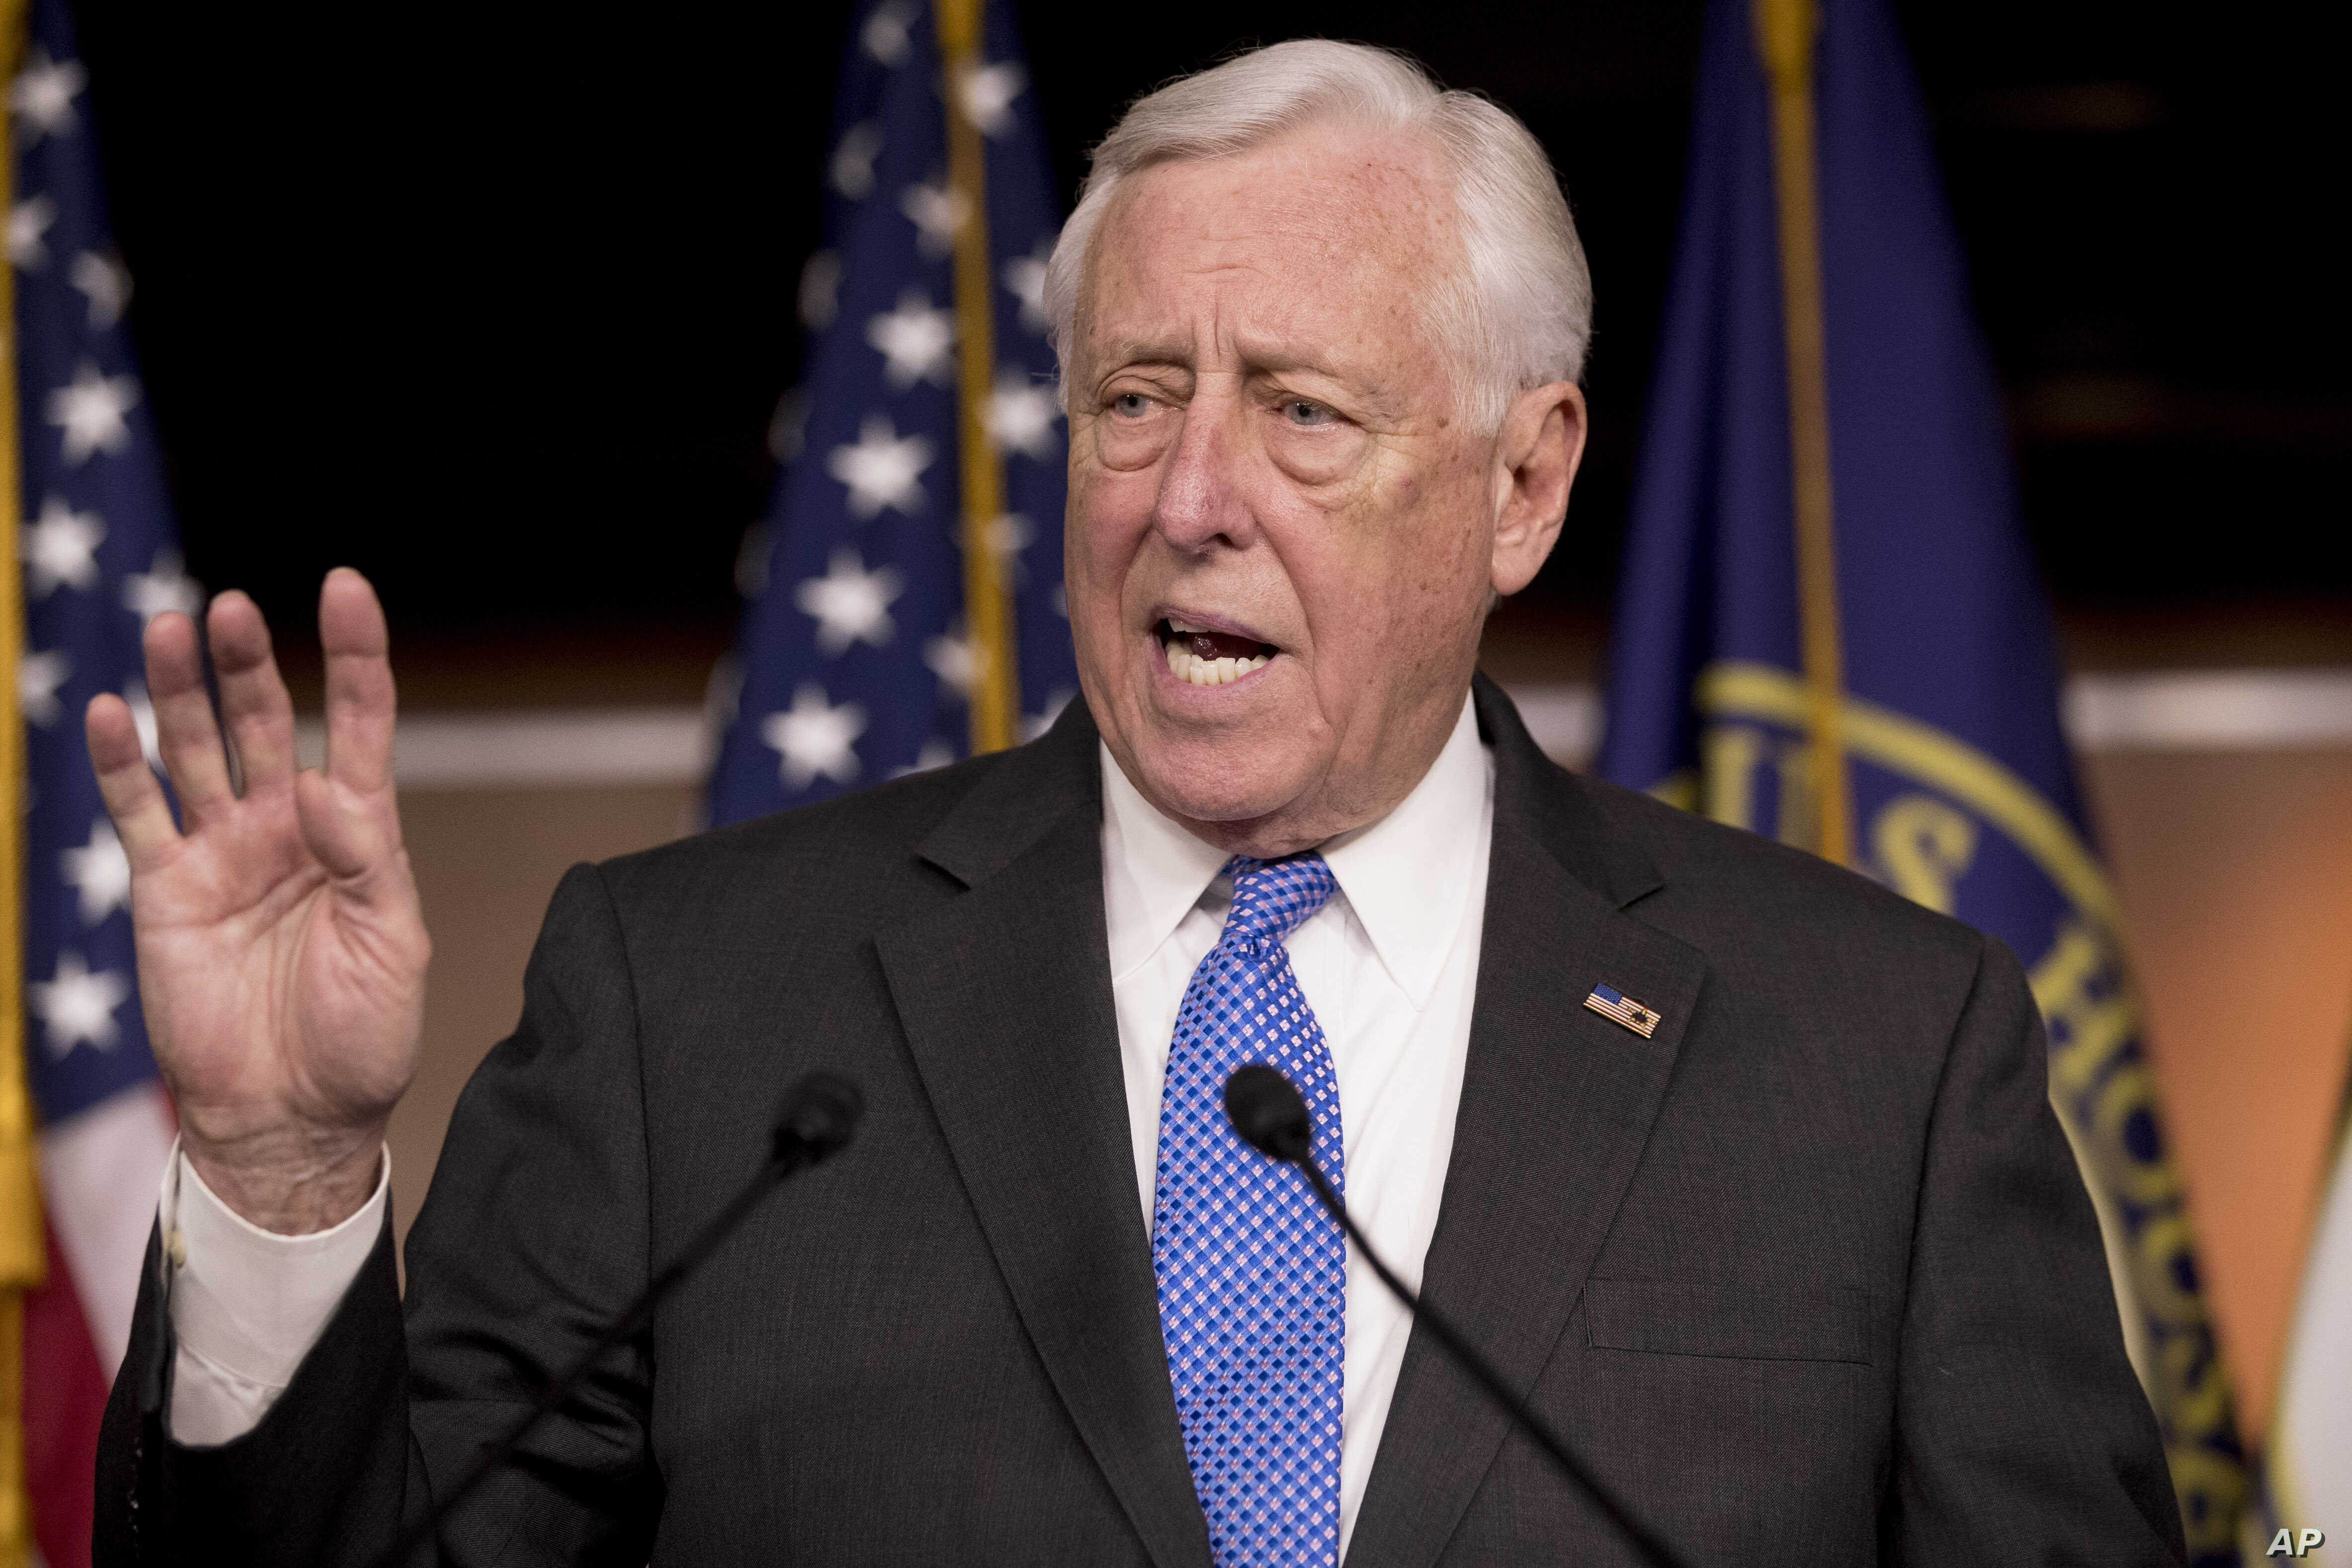 House Majority Leader Steny Hoyer of Maryland, speaks at a news conference to introduce legislation supporting NATO on Capitol Hill in Washington, Jan. 22, 2019.